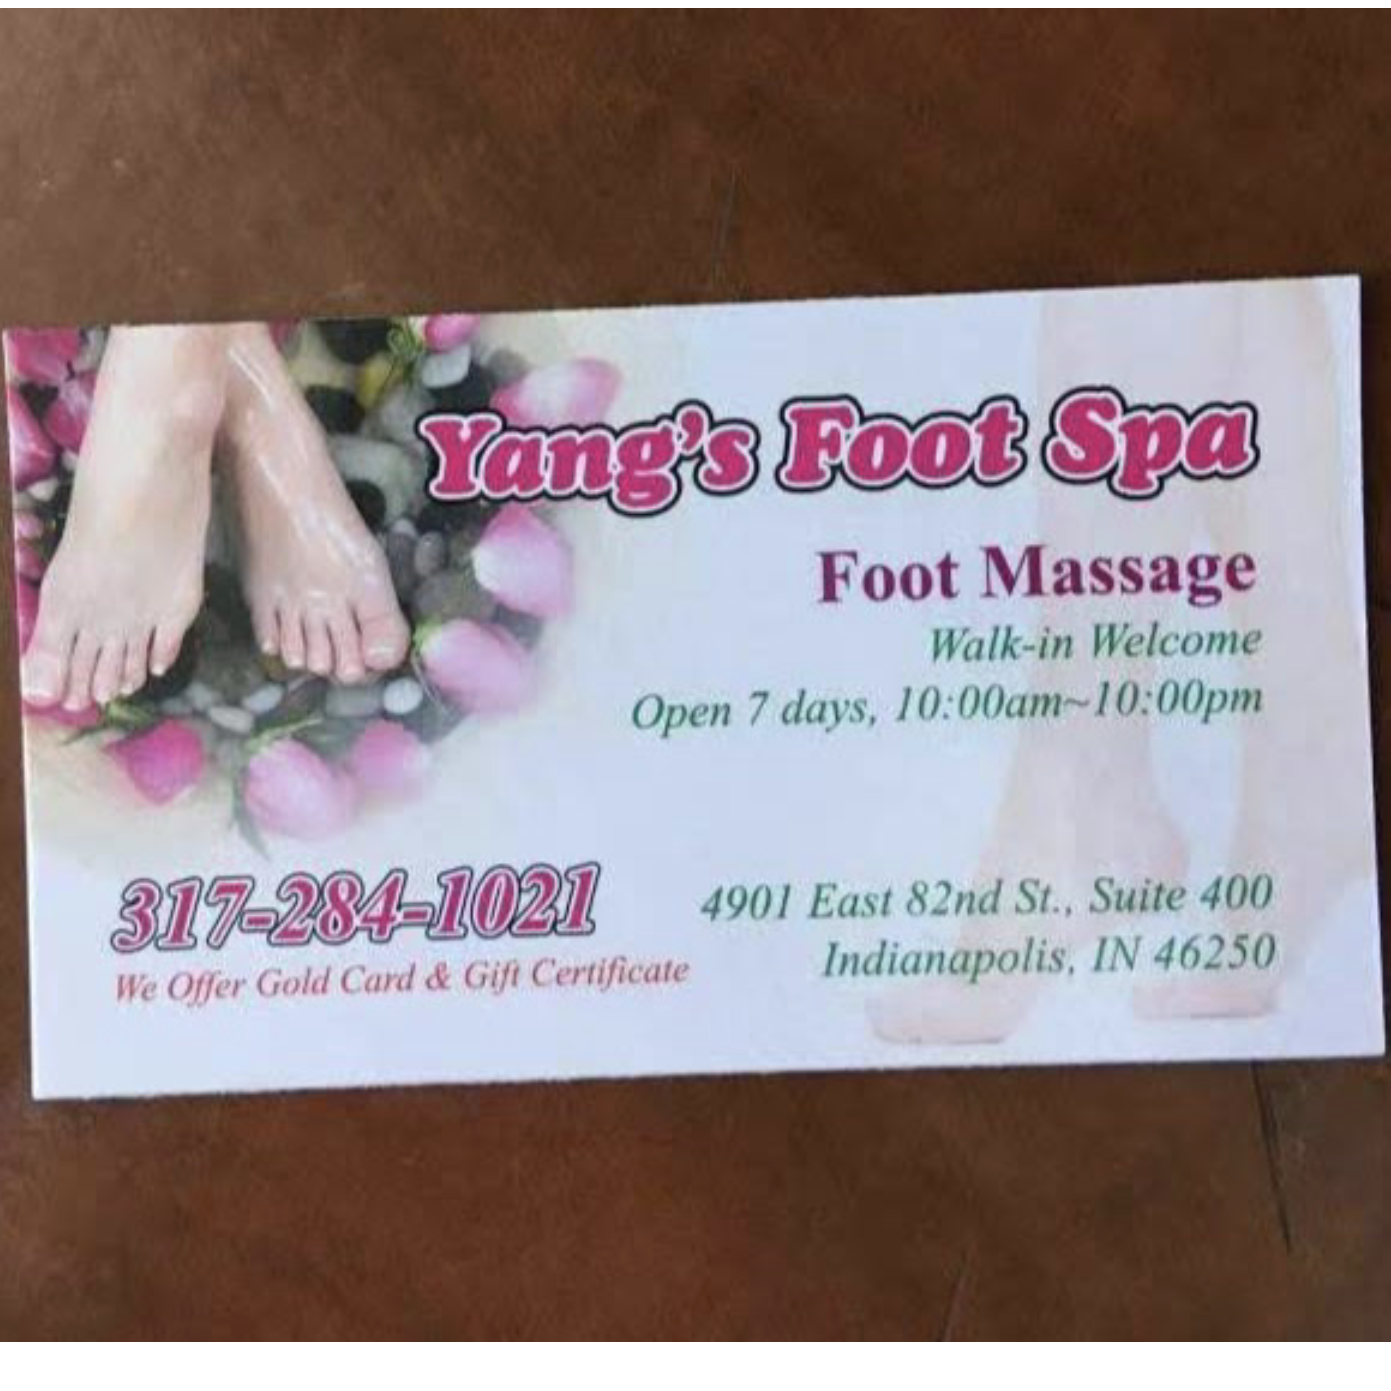 Yang's Foot Spa